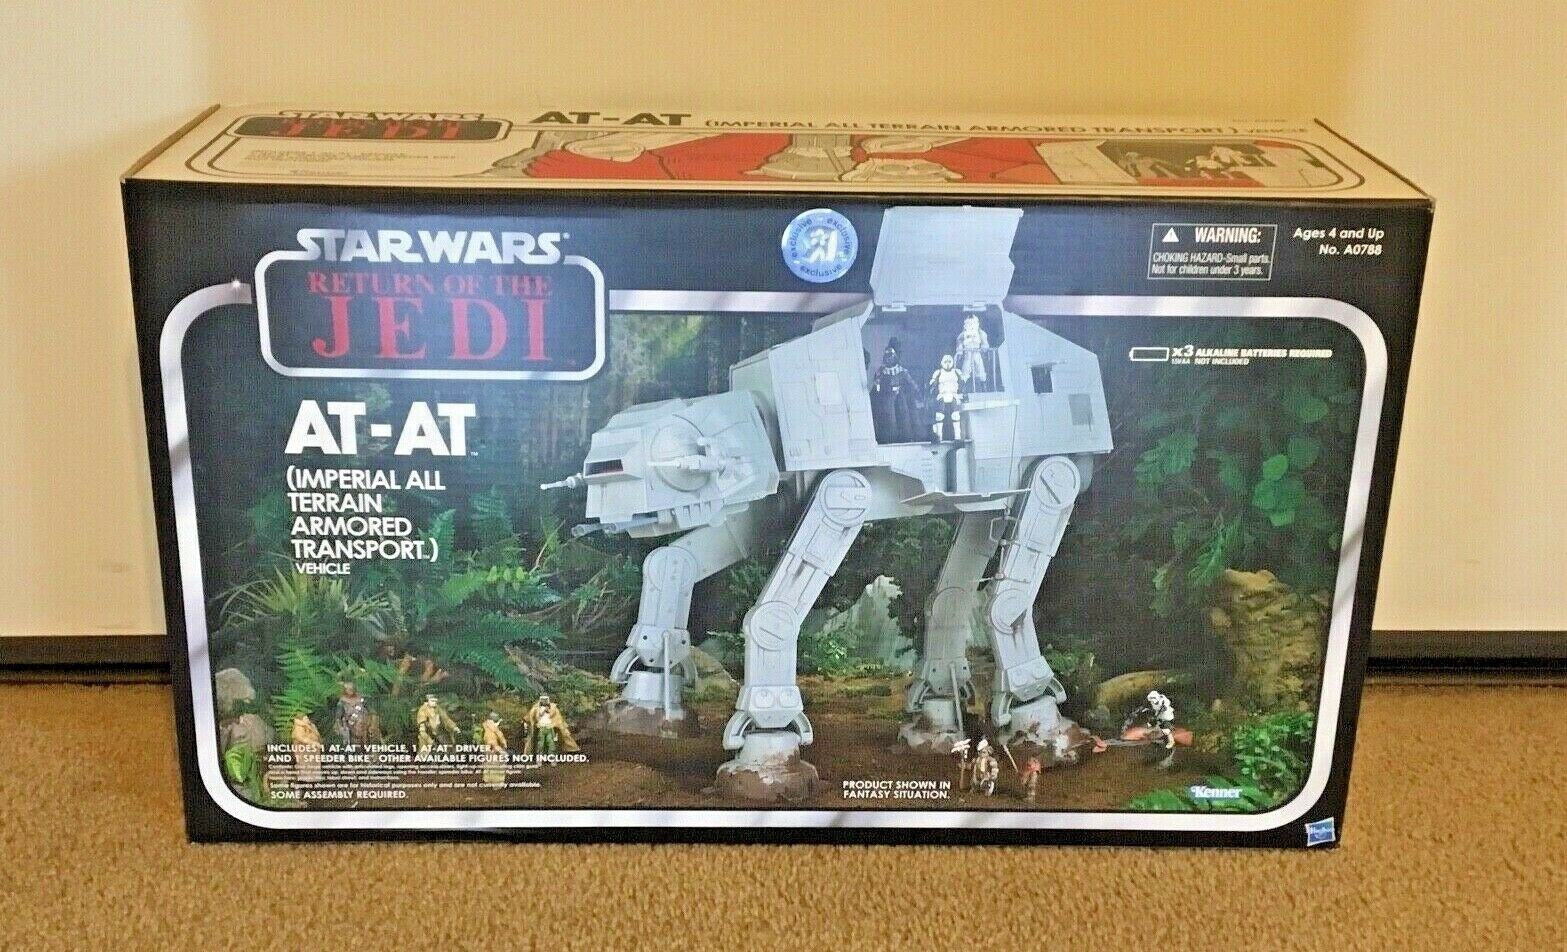 Star Wars Vintage Collection redJ AT-AT - Toys R Us Exclusive 2012